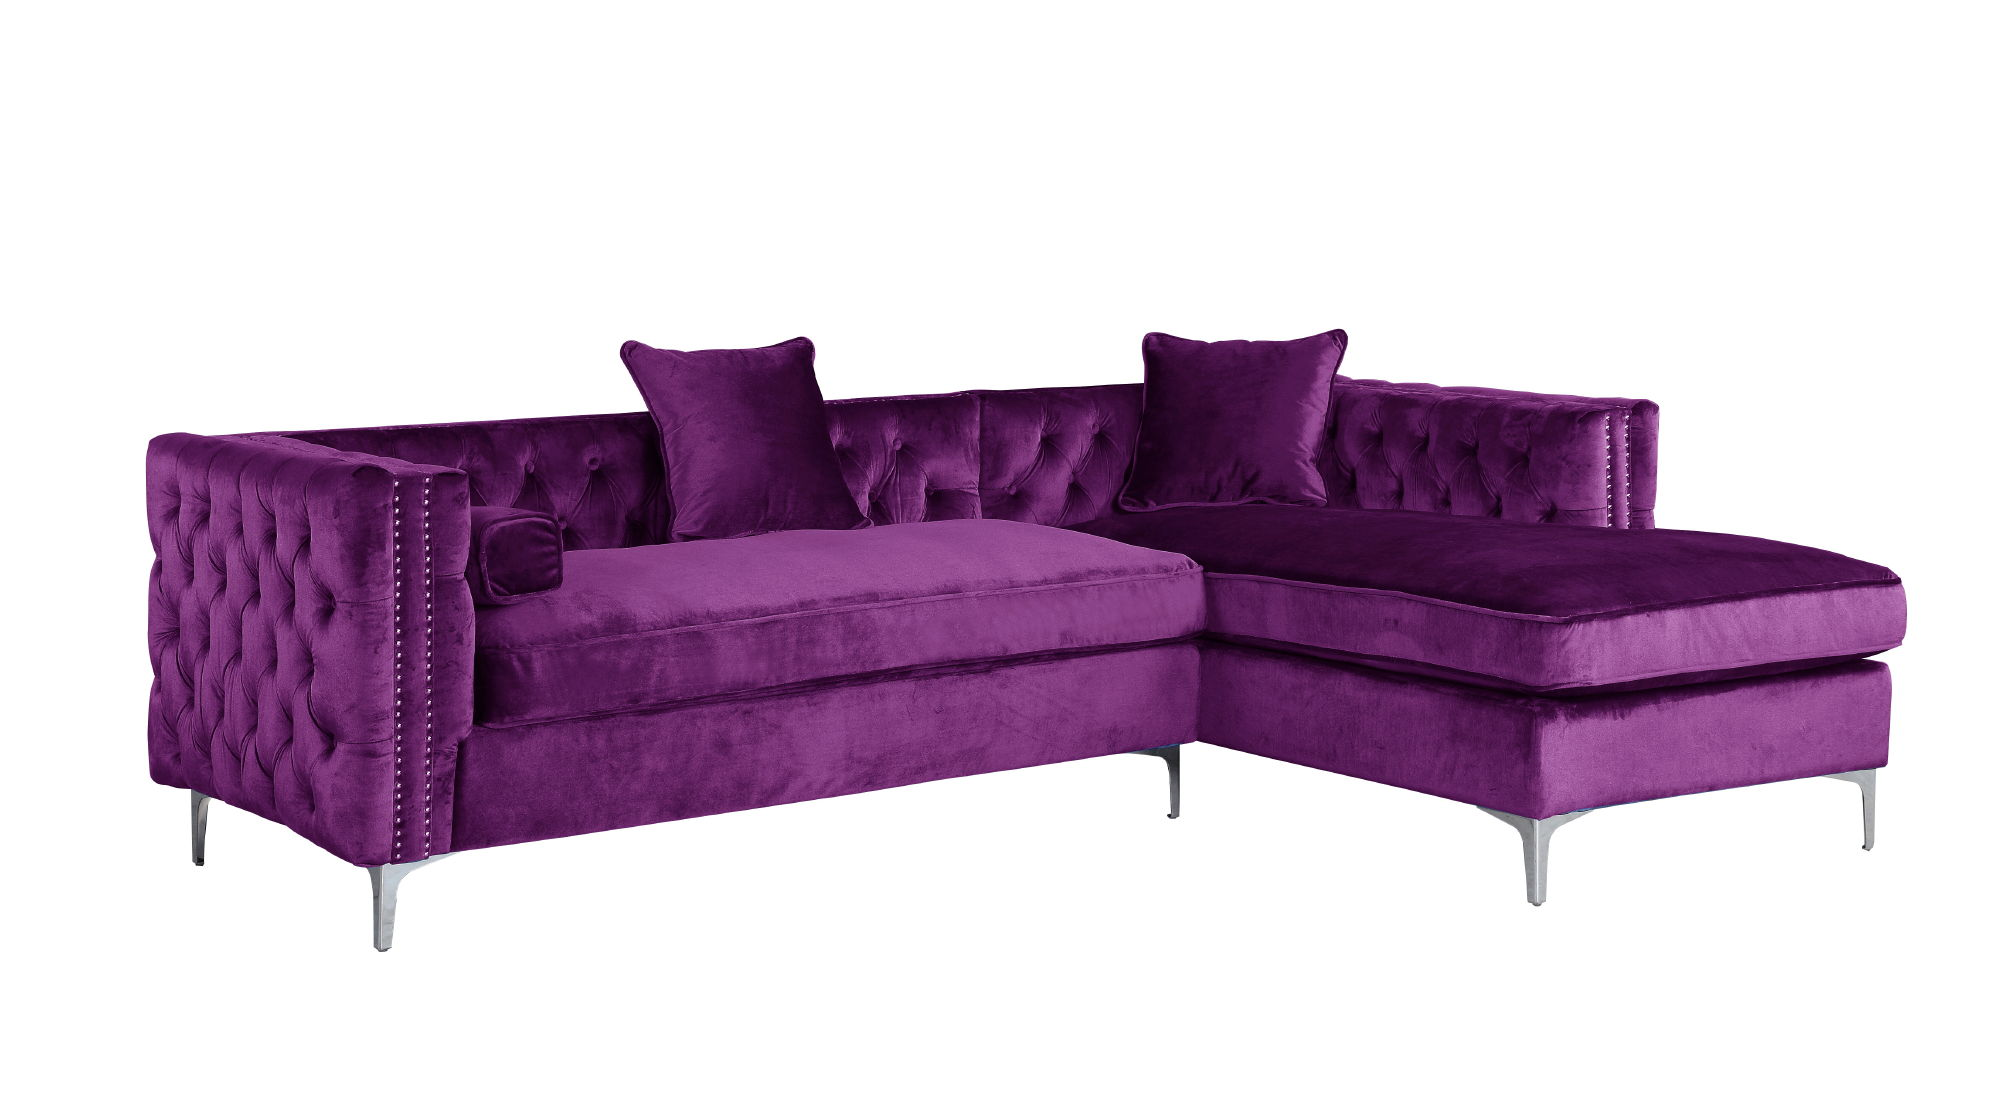 Fabulous Chic Home Da Vinci Purple Velvet Right Facing Sectional Sofa With 3 Pillows Pdpeps Interior Chair Design Pdpepsorg